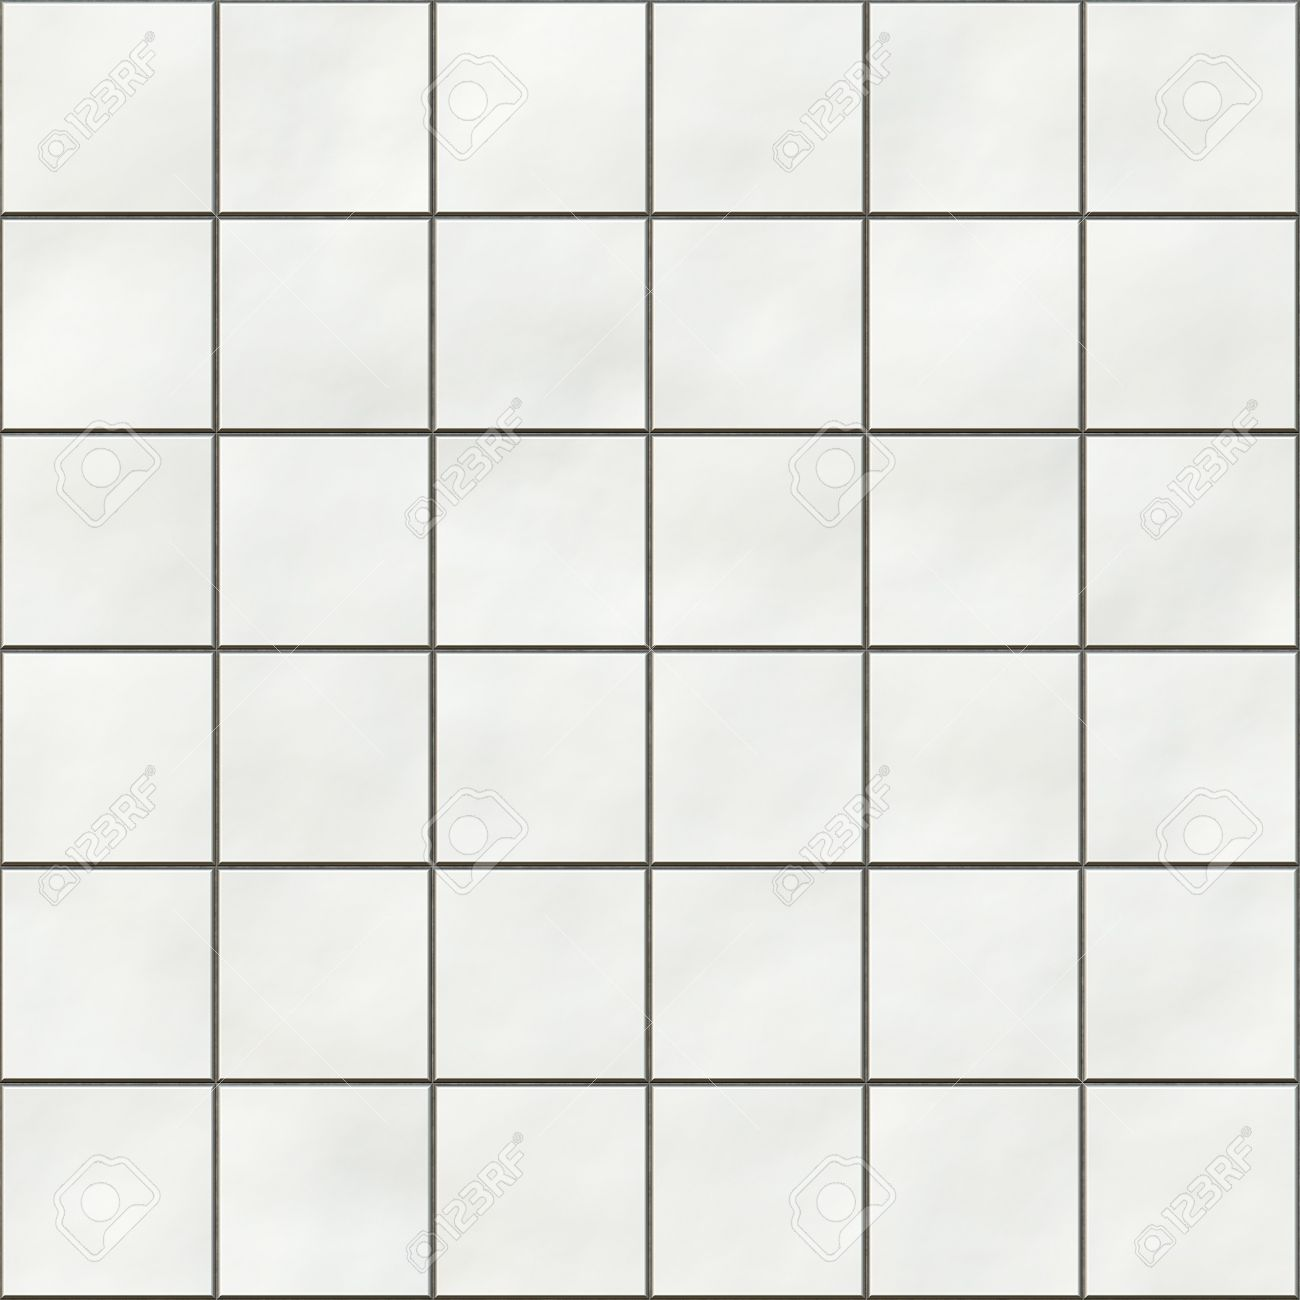 Bathroom tiles texture - Seamless White Square Tiles Texture Stock Photo 7306510